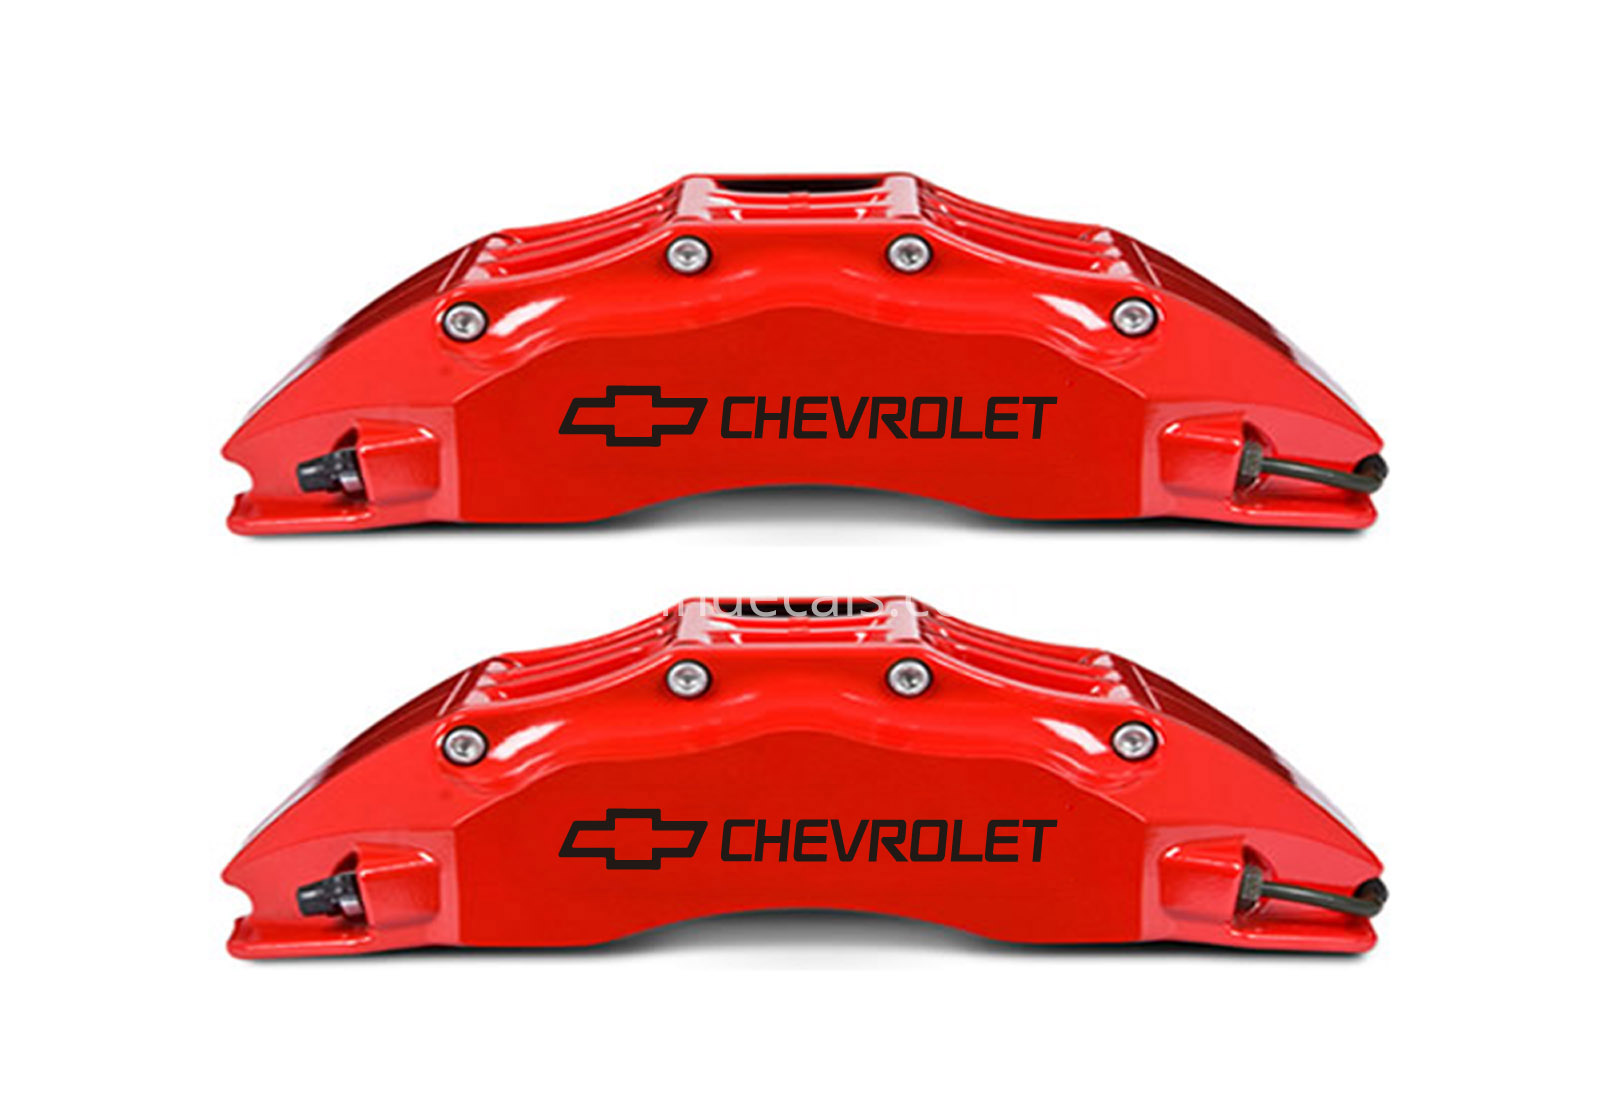 6 x Chevrolet Stickers for Brakes - Black